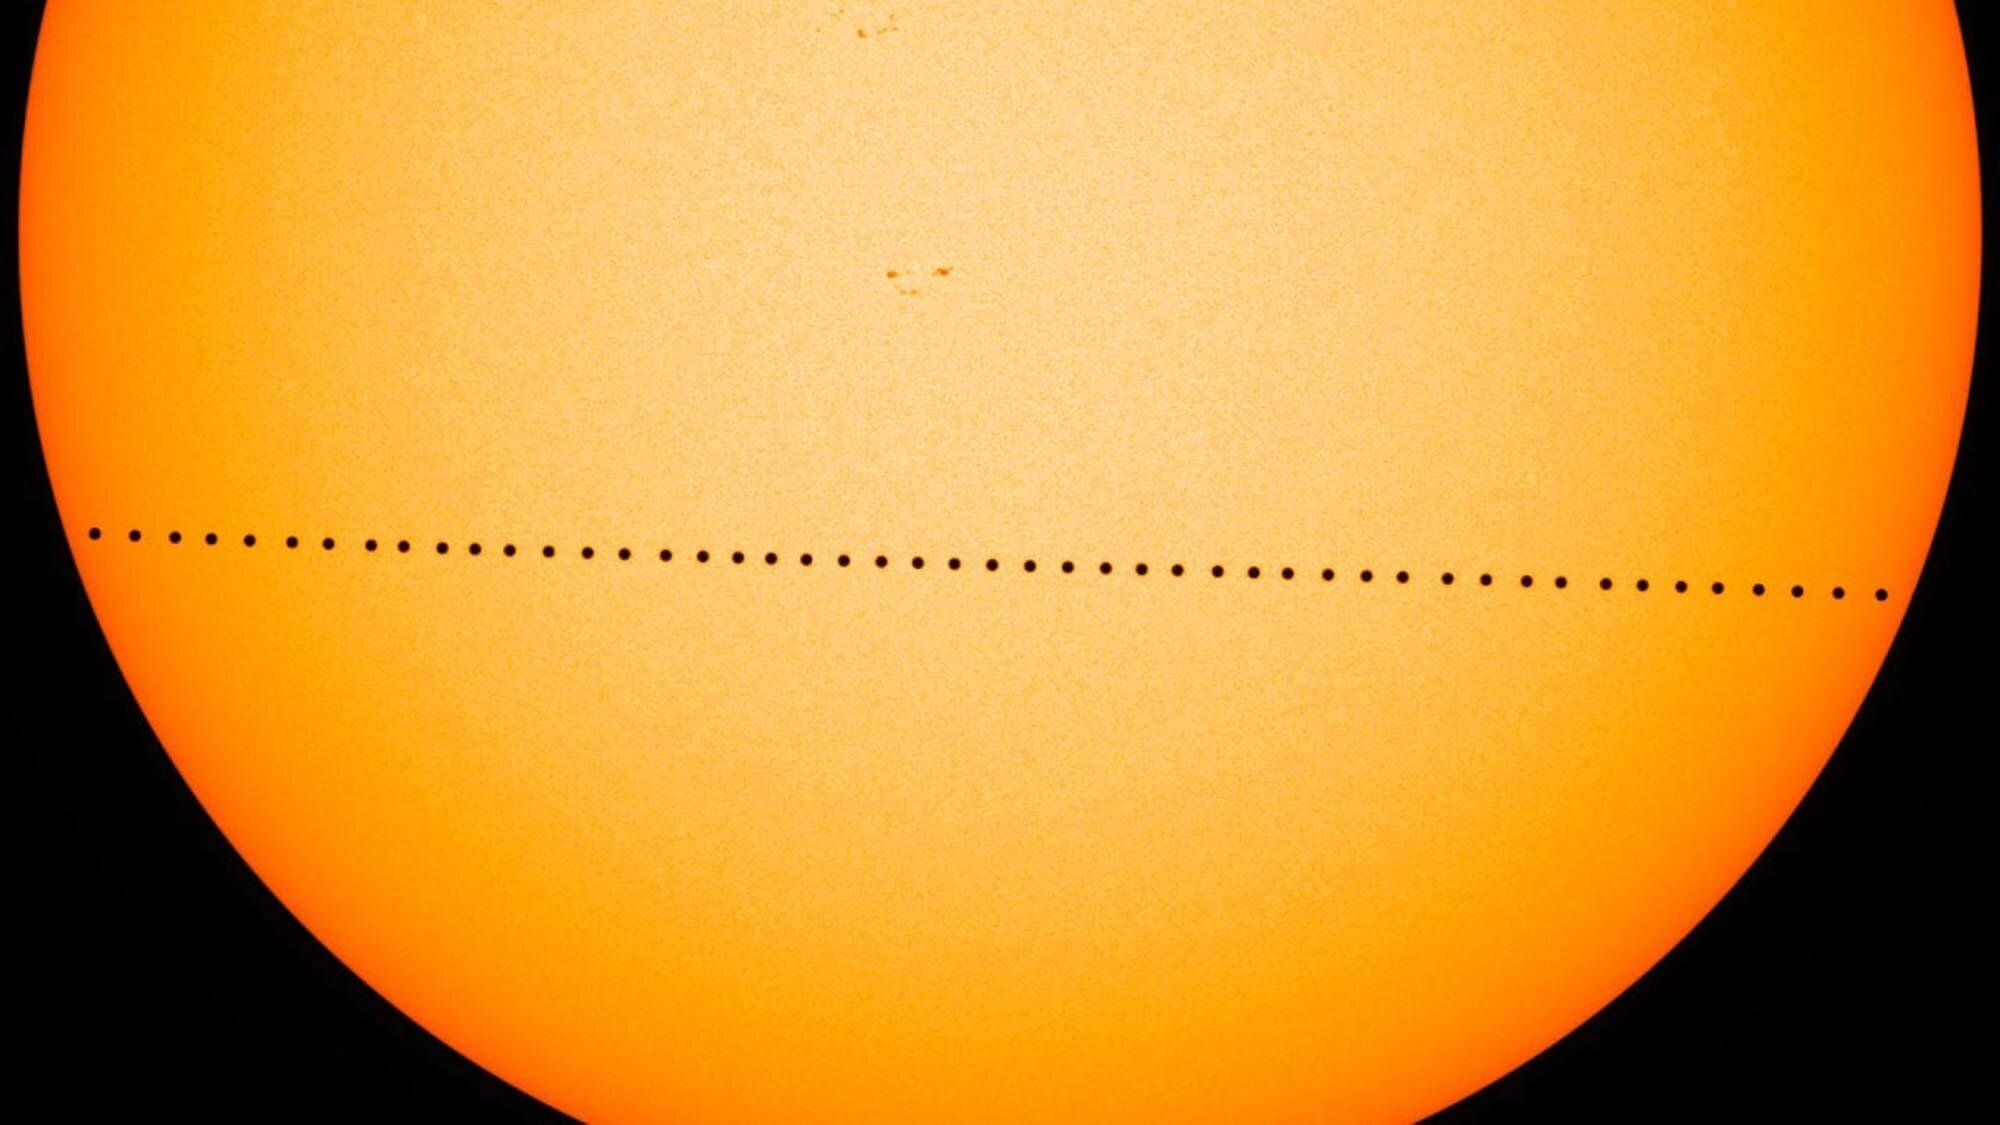 #Video | Everything you need to know about the transit of mercury over the solar disk